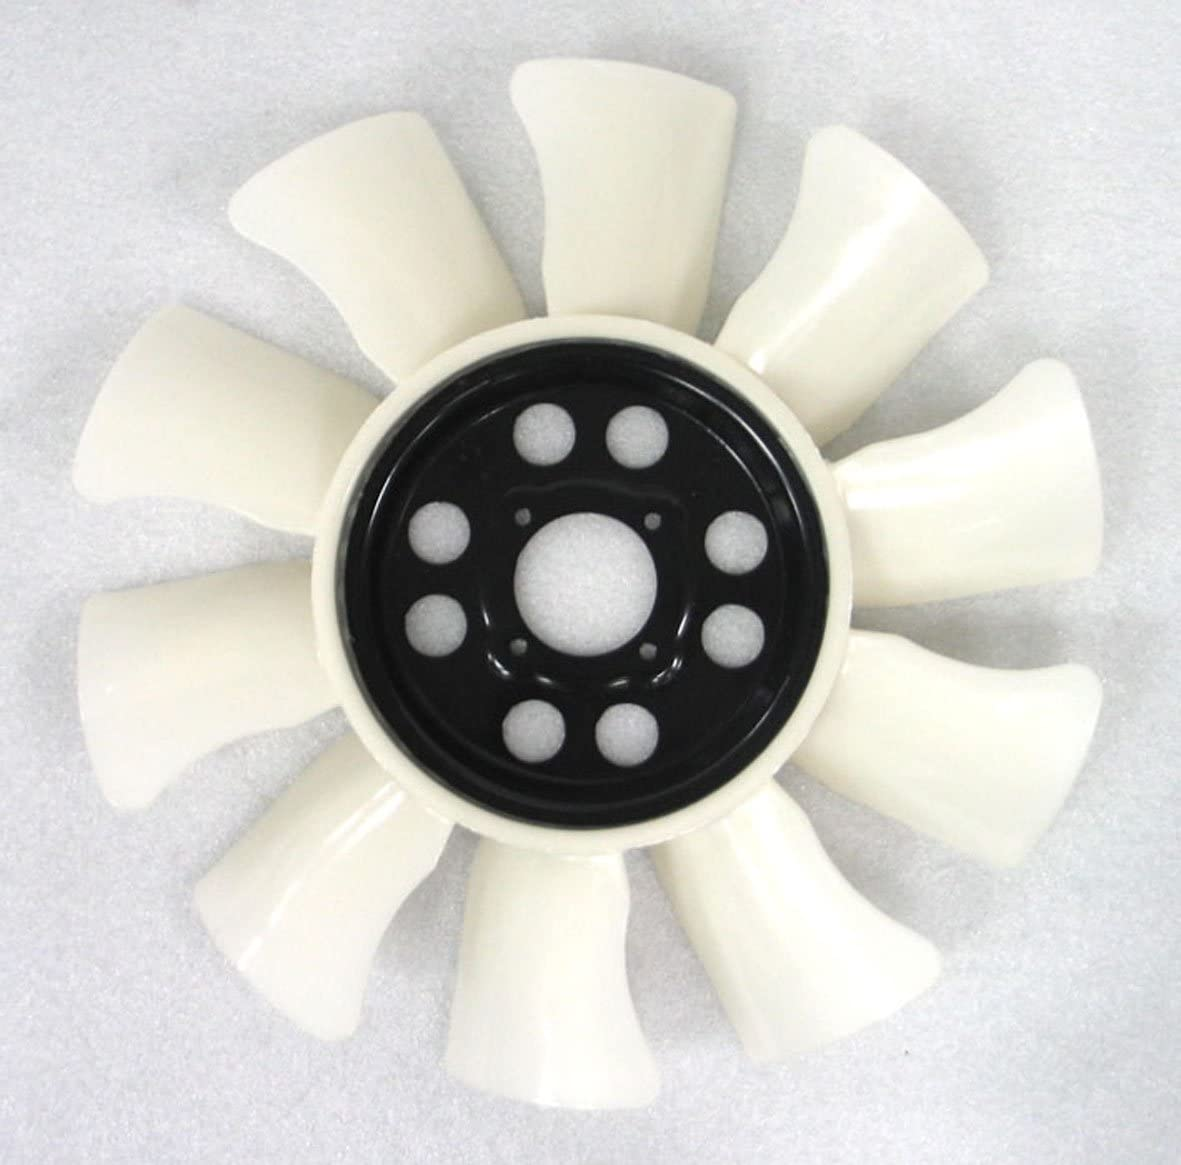 DEPO 330-55027-400 Replacement Engine Cooling Fan Blade (This product is an aftermarket product. It is not created or sold by the OE car company)